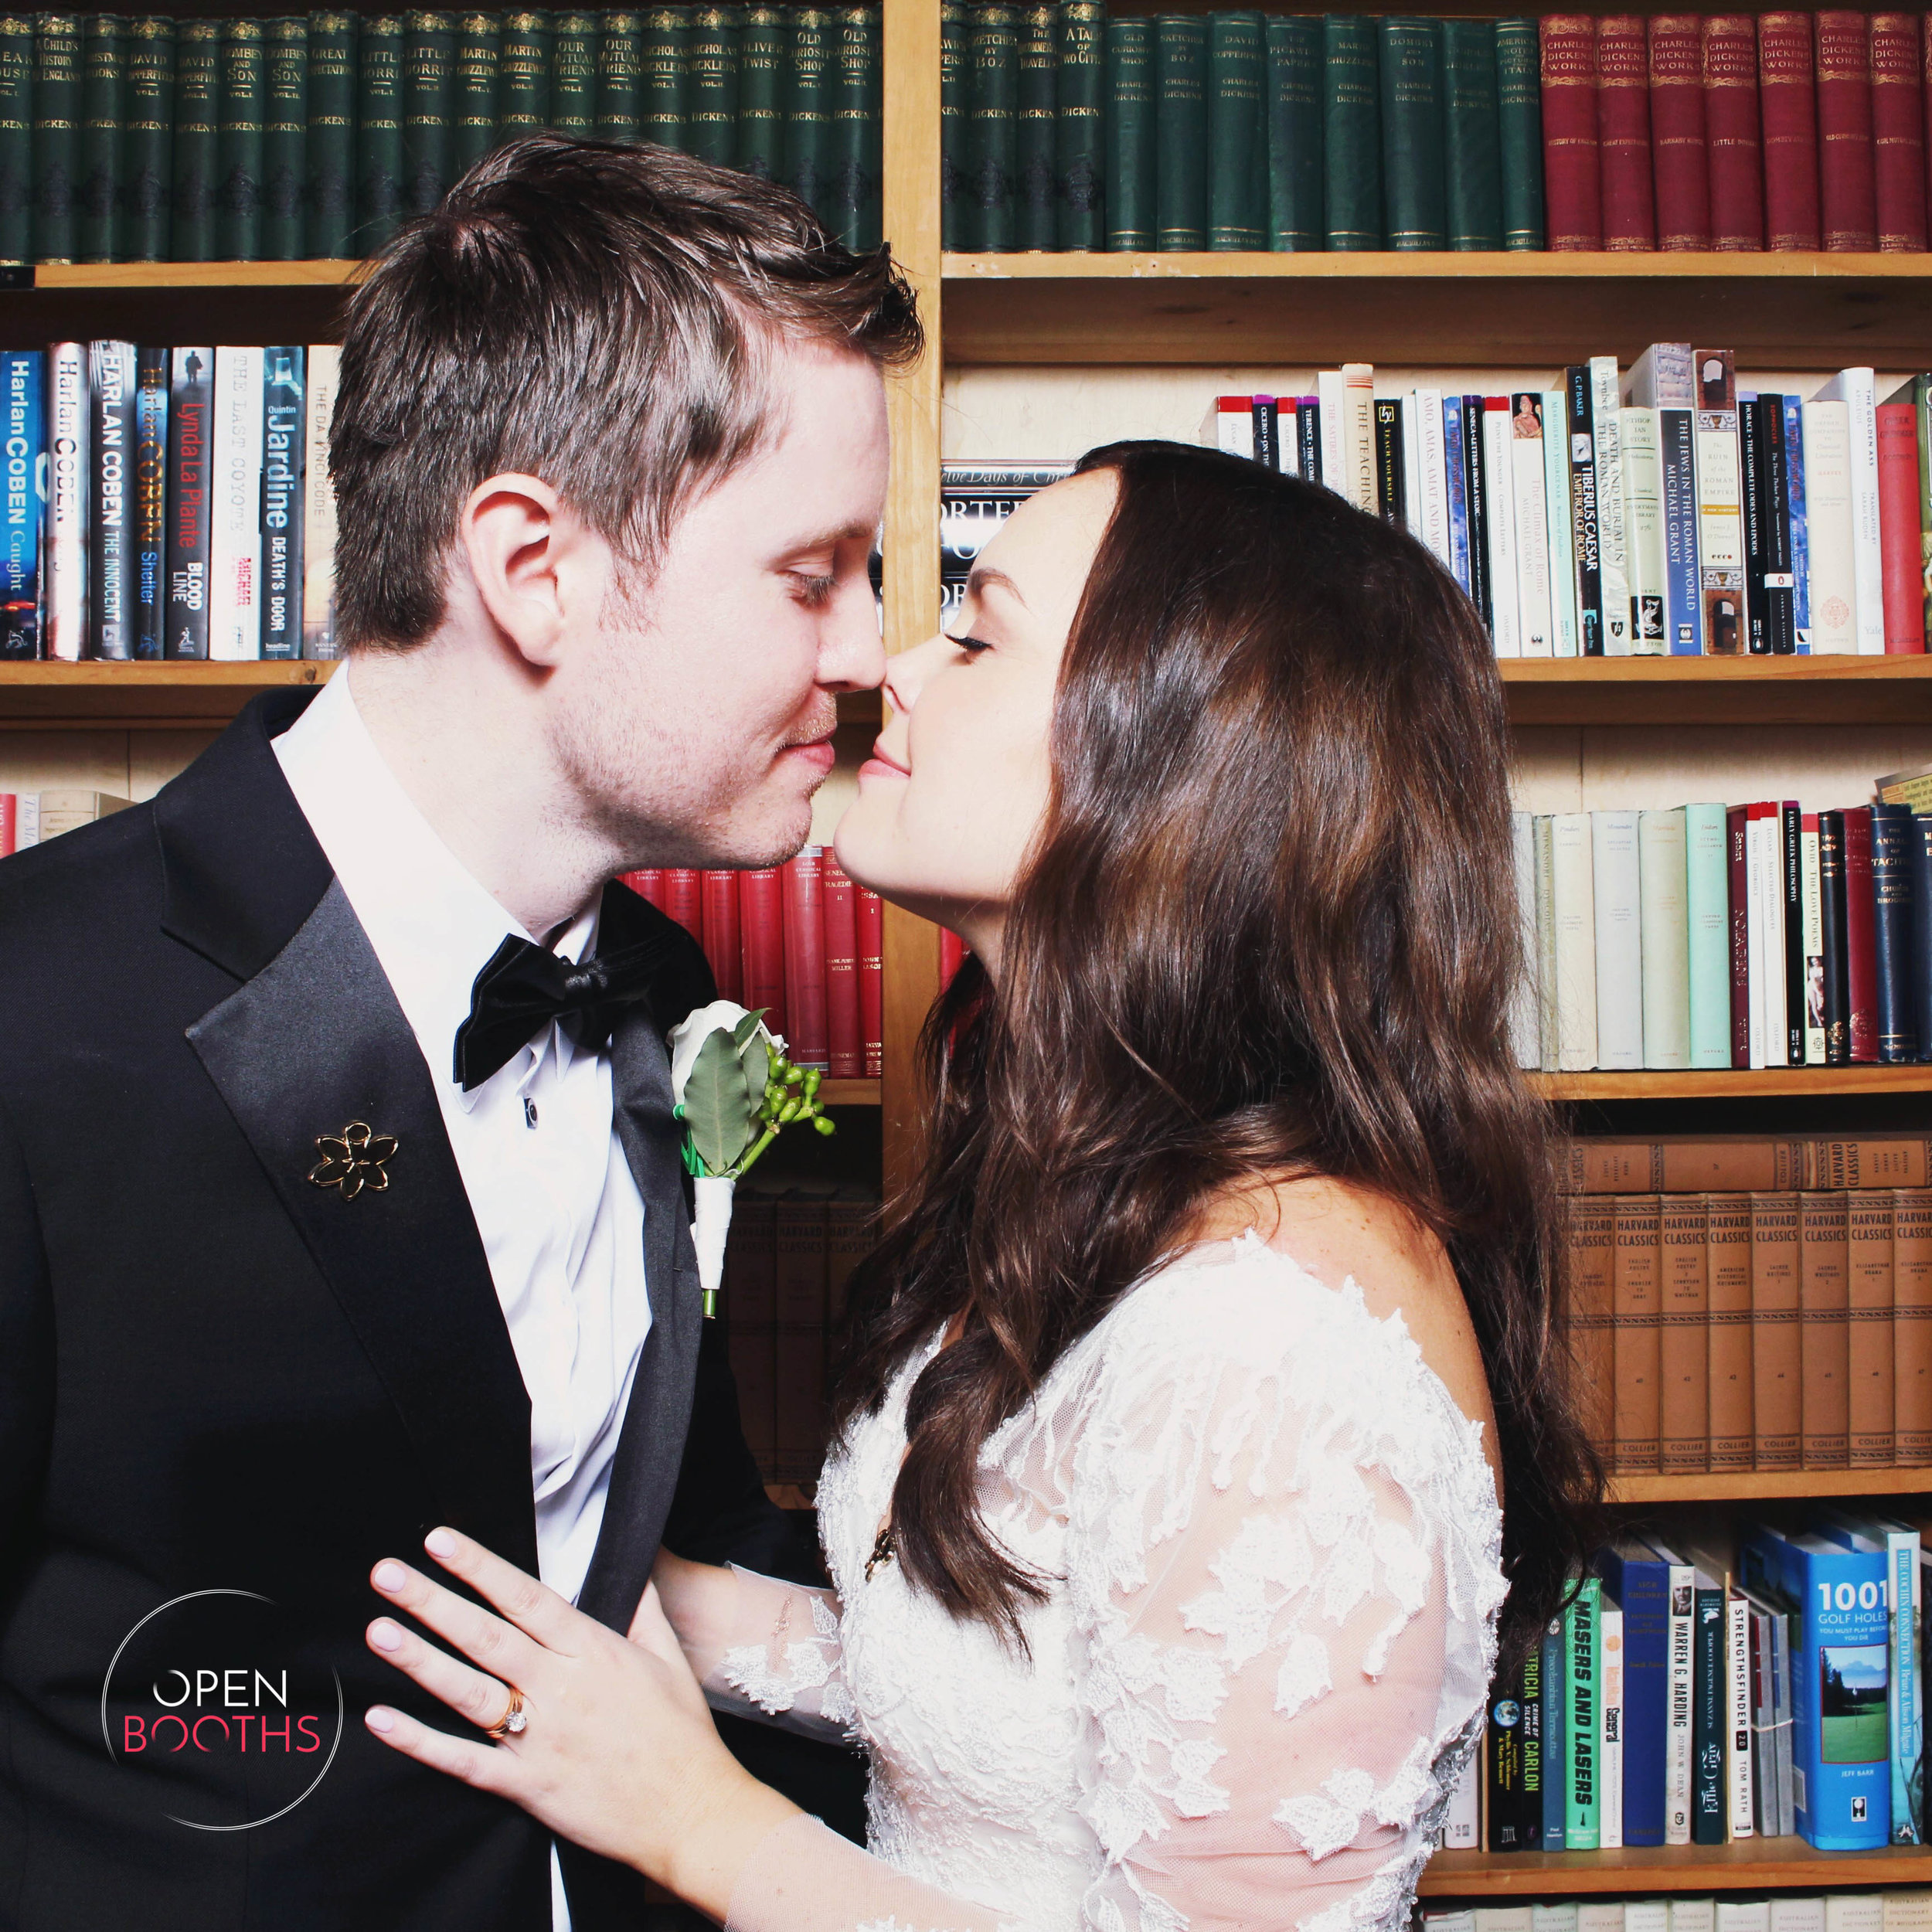 OpenBooths-Ryan&Jordan'sWedding(13-4-18)(IndividualPhotos)-114.jpg